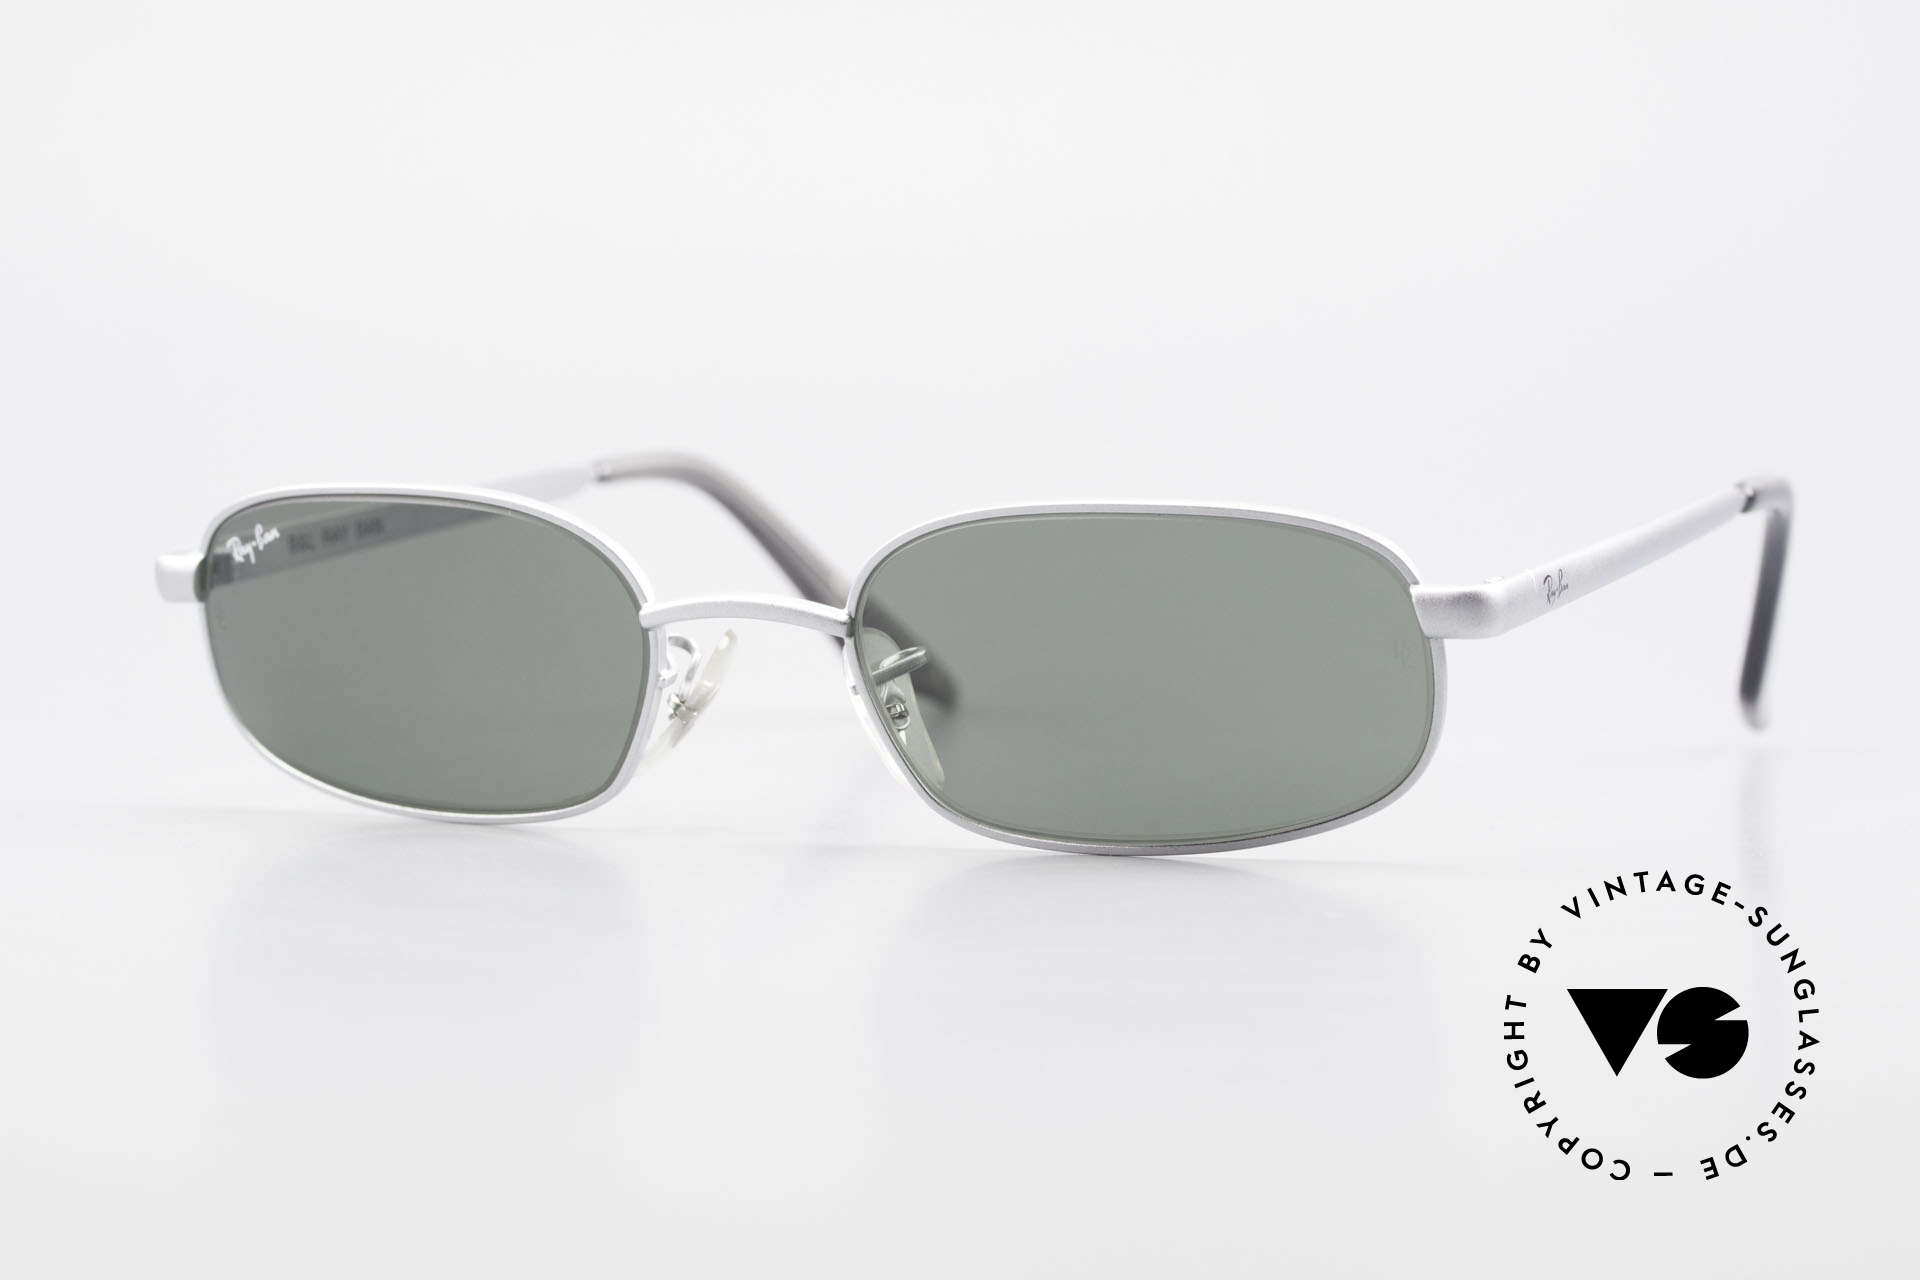 "Ray Ban Sidestreet Sidewalk Rectangle Ray Ban USA Shades, old Ray-Ban 'SideStreet-Series"" sunglasses from 1999, Made for Men"